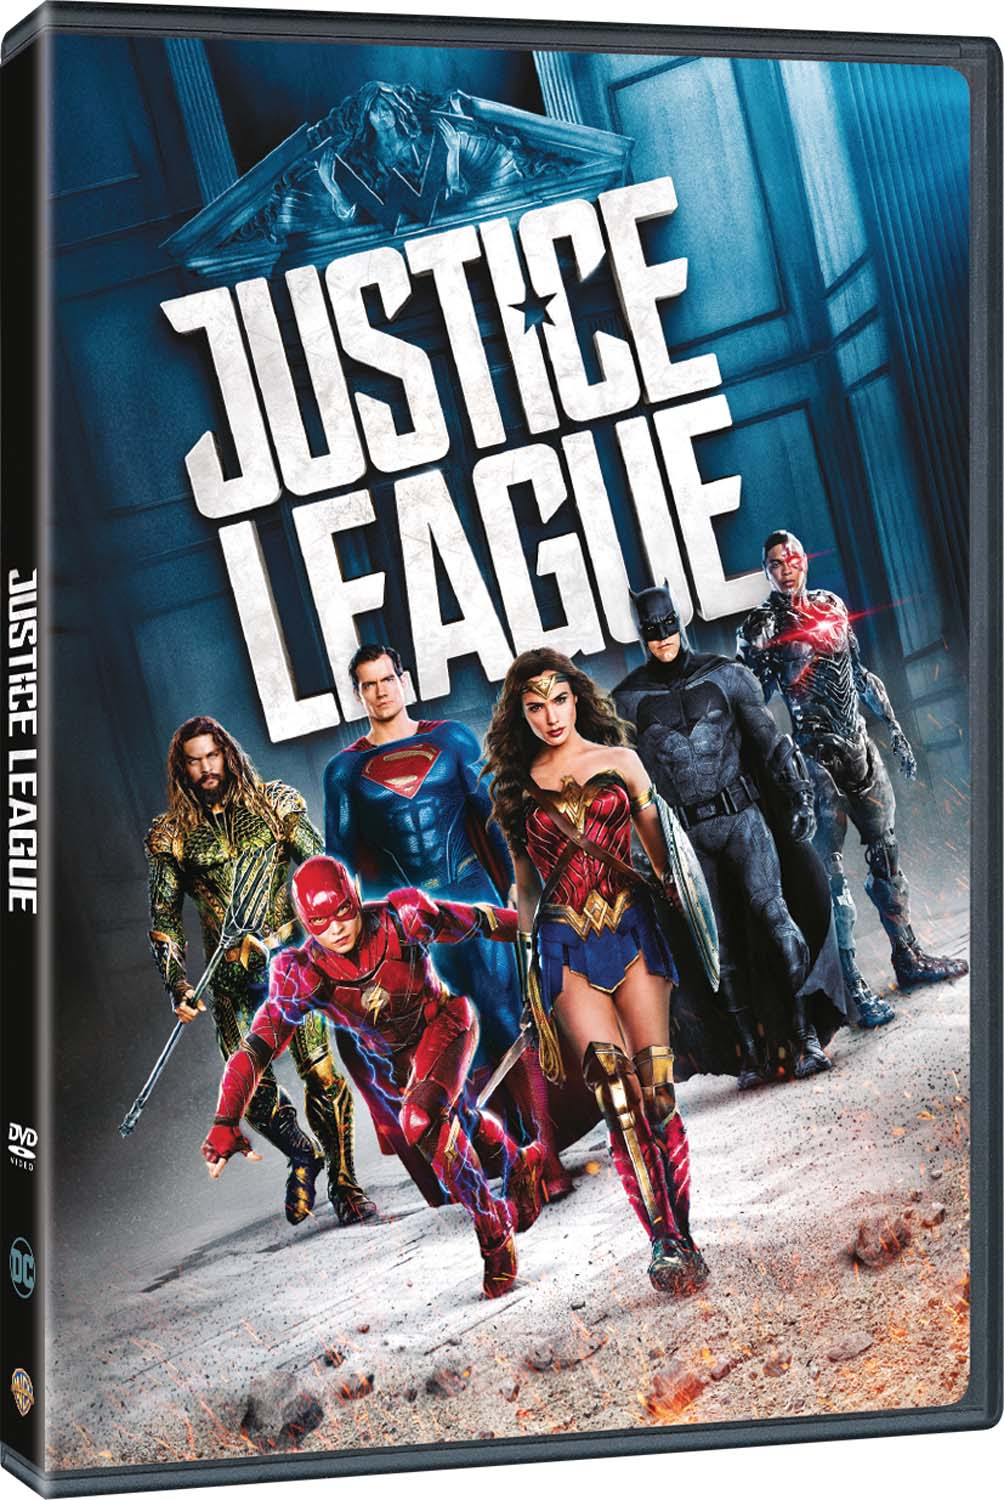 JUSTICE LEAGUE (DVD)